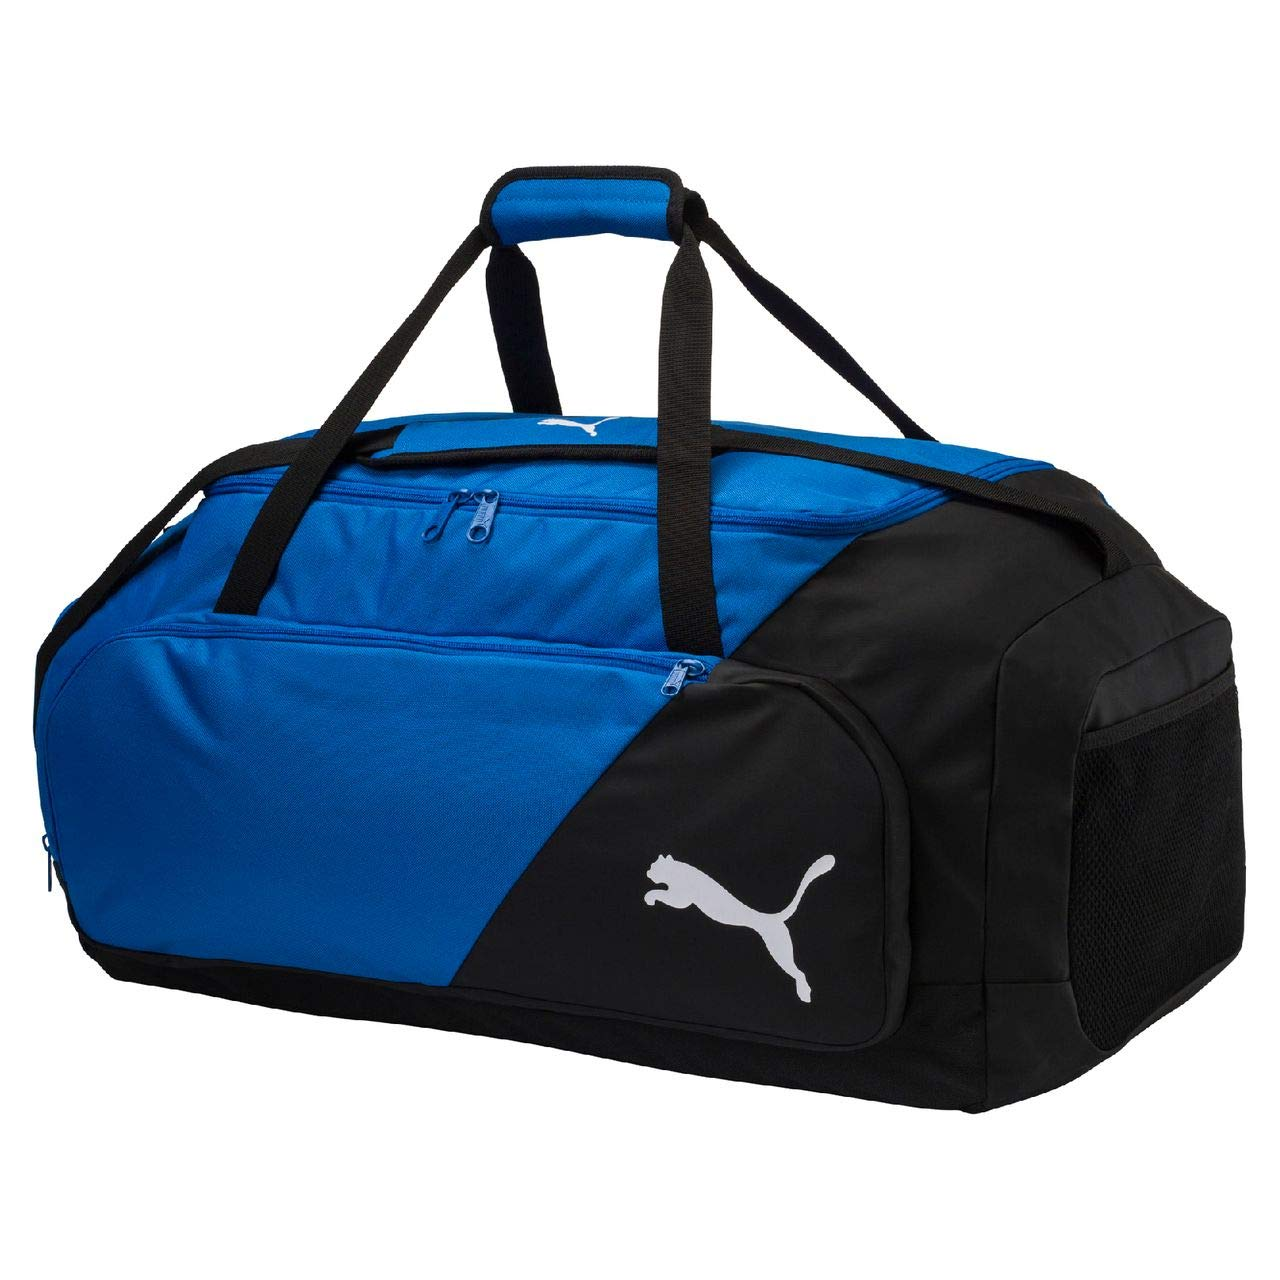 Puma Liga Large, Bag Unisex Adulto, Unisex Adulto, Liga Large Bag, Red 75208